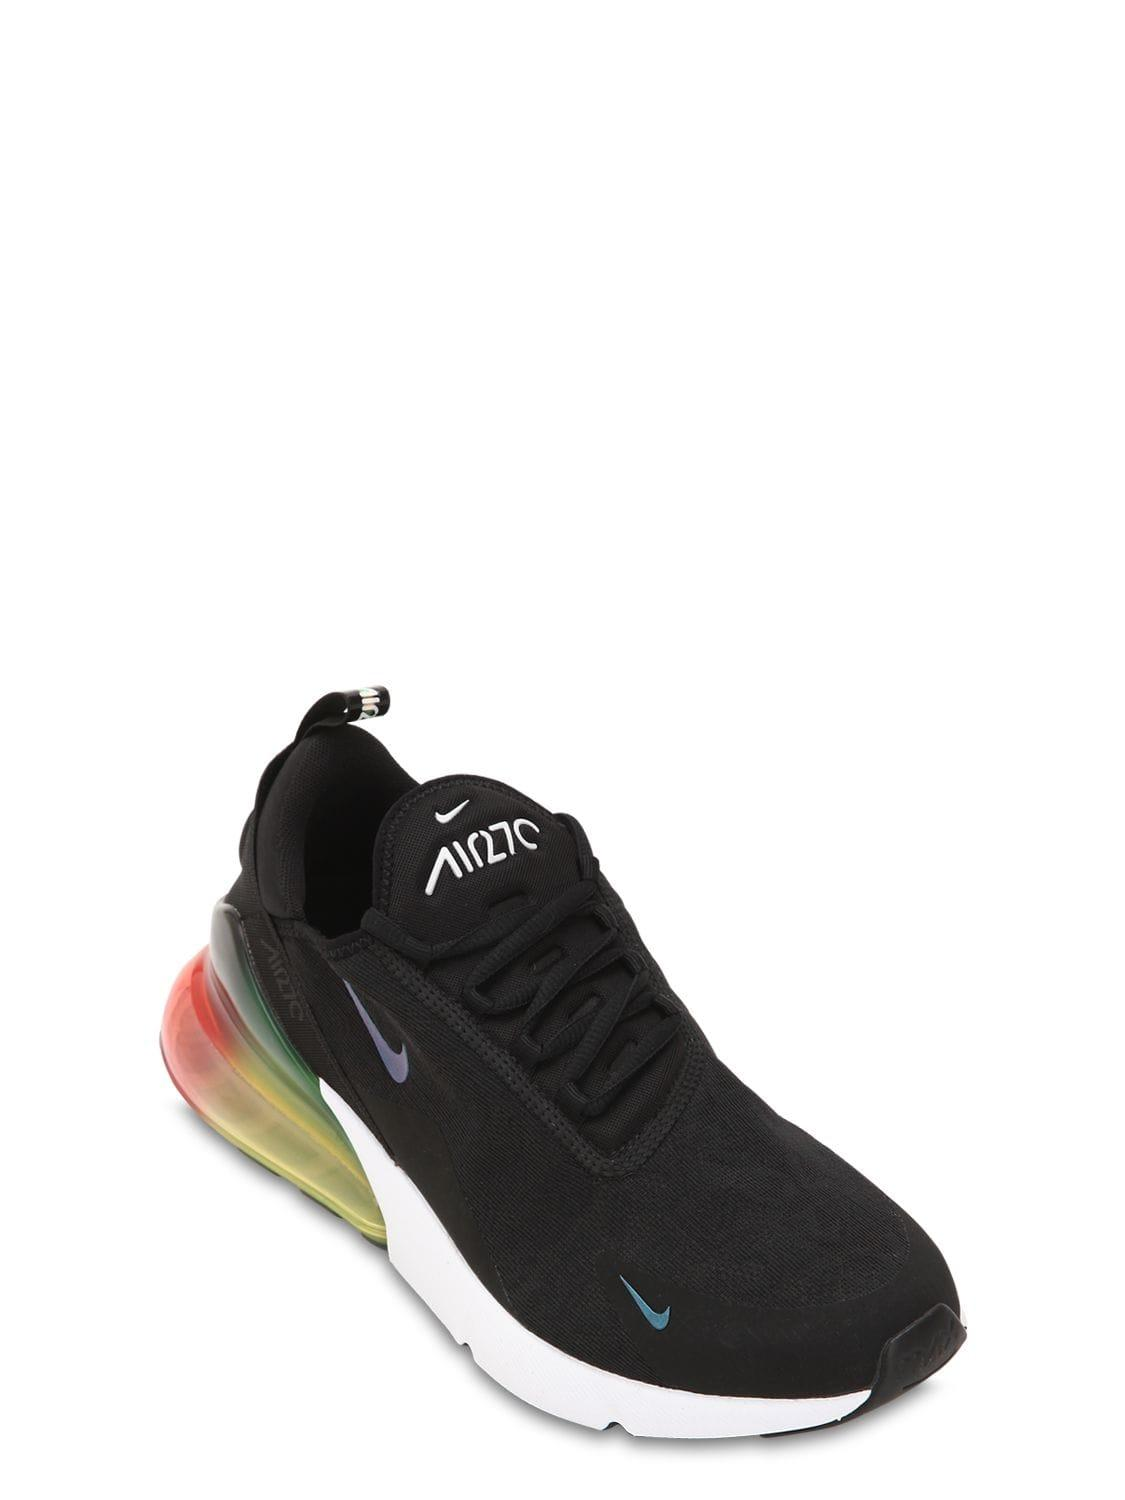 official photos ddee2 4fd55 Nike Air Max 270 Sneakers in Black for Men - Lyst